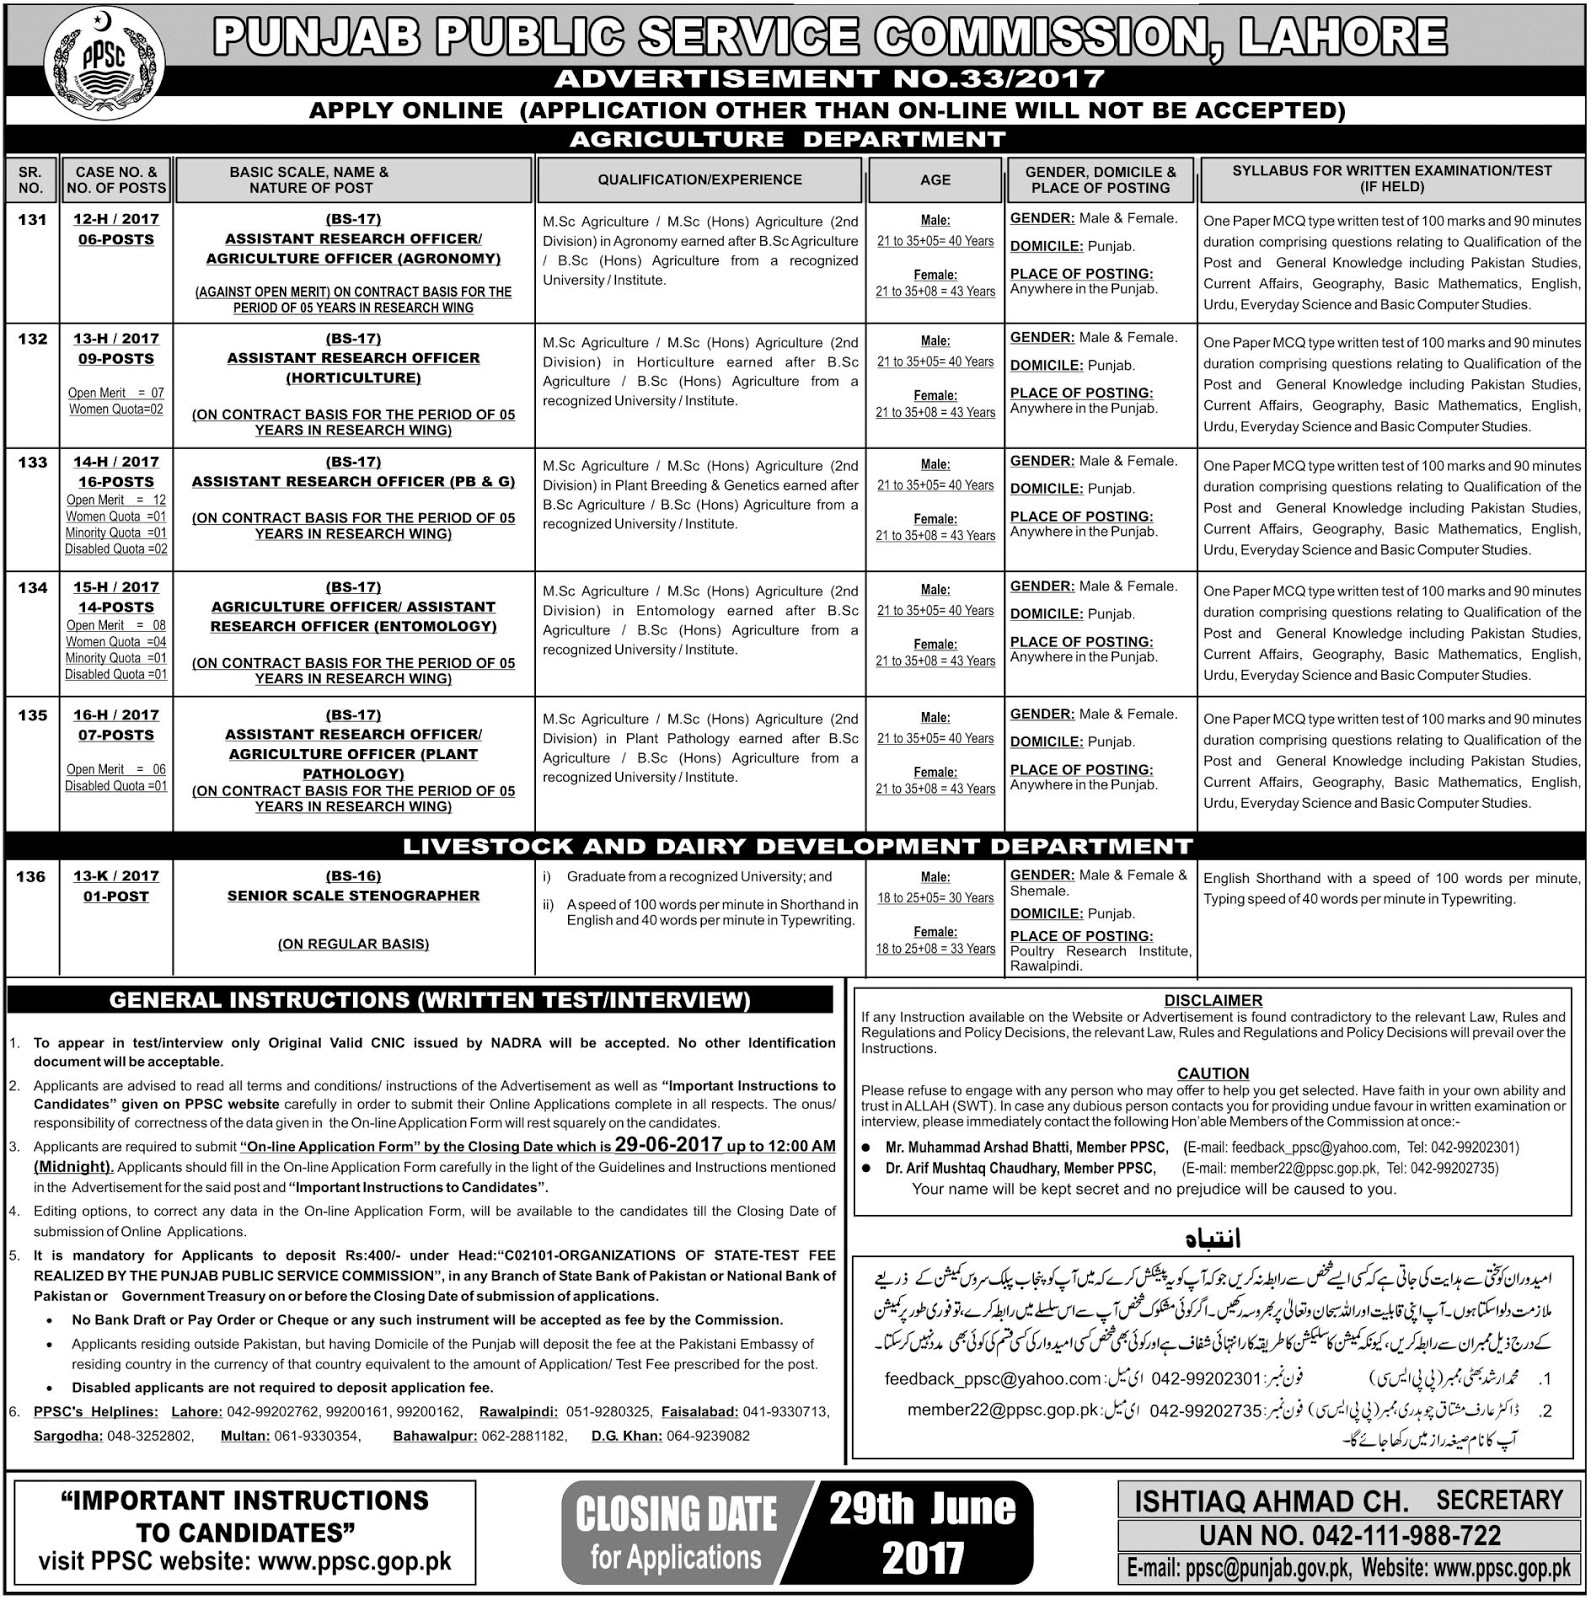 PPSC Officers  Jobs  in Punjab Public Service Commission  11 June 2017